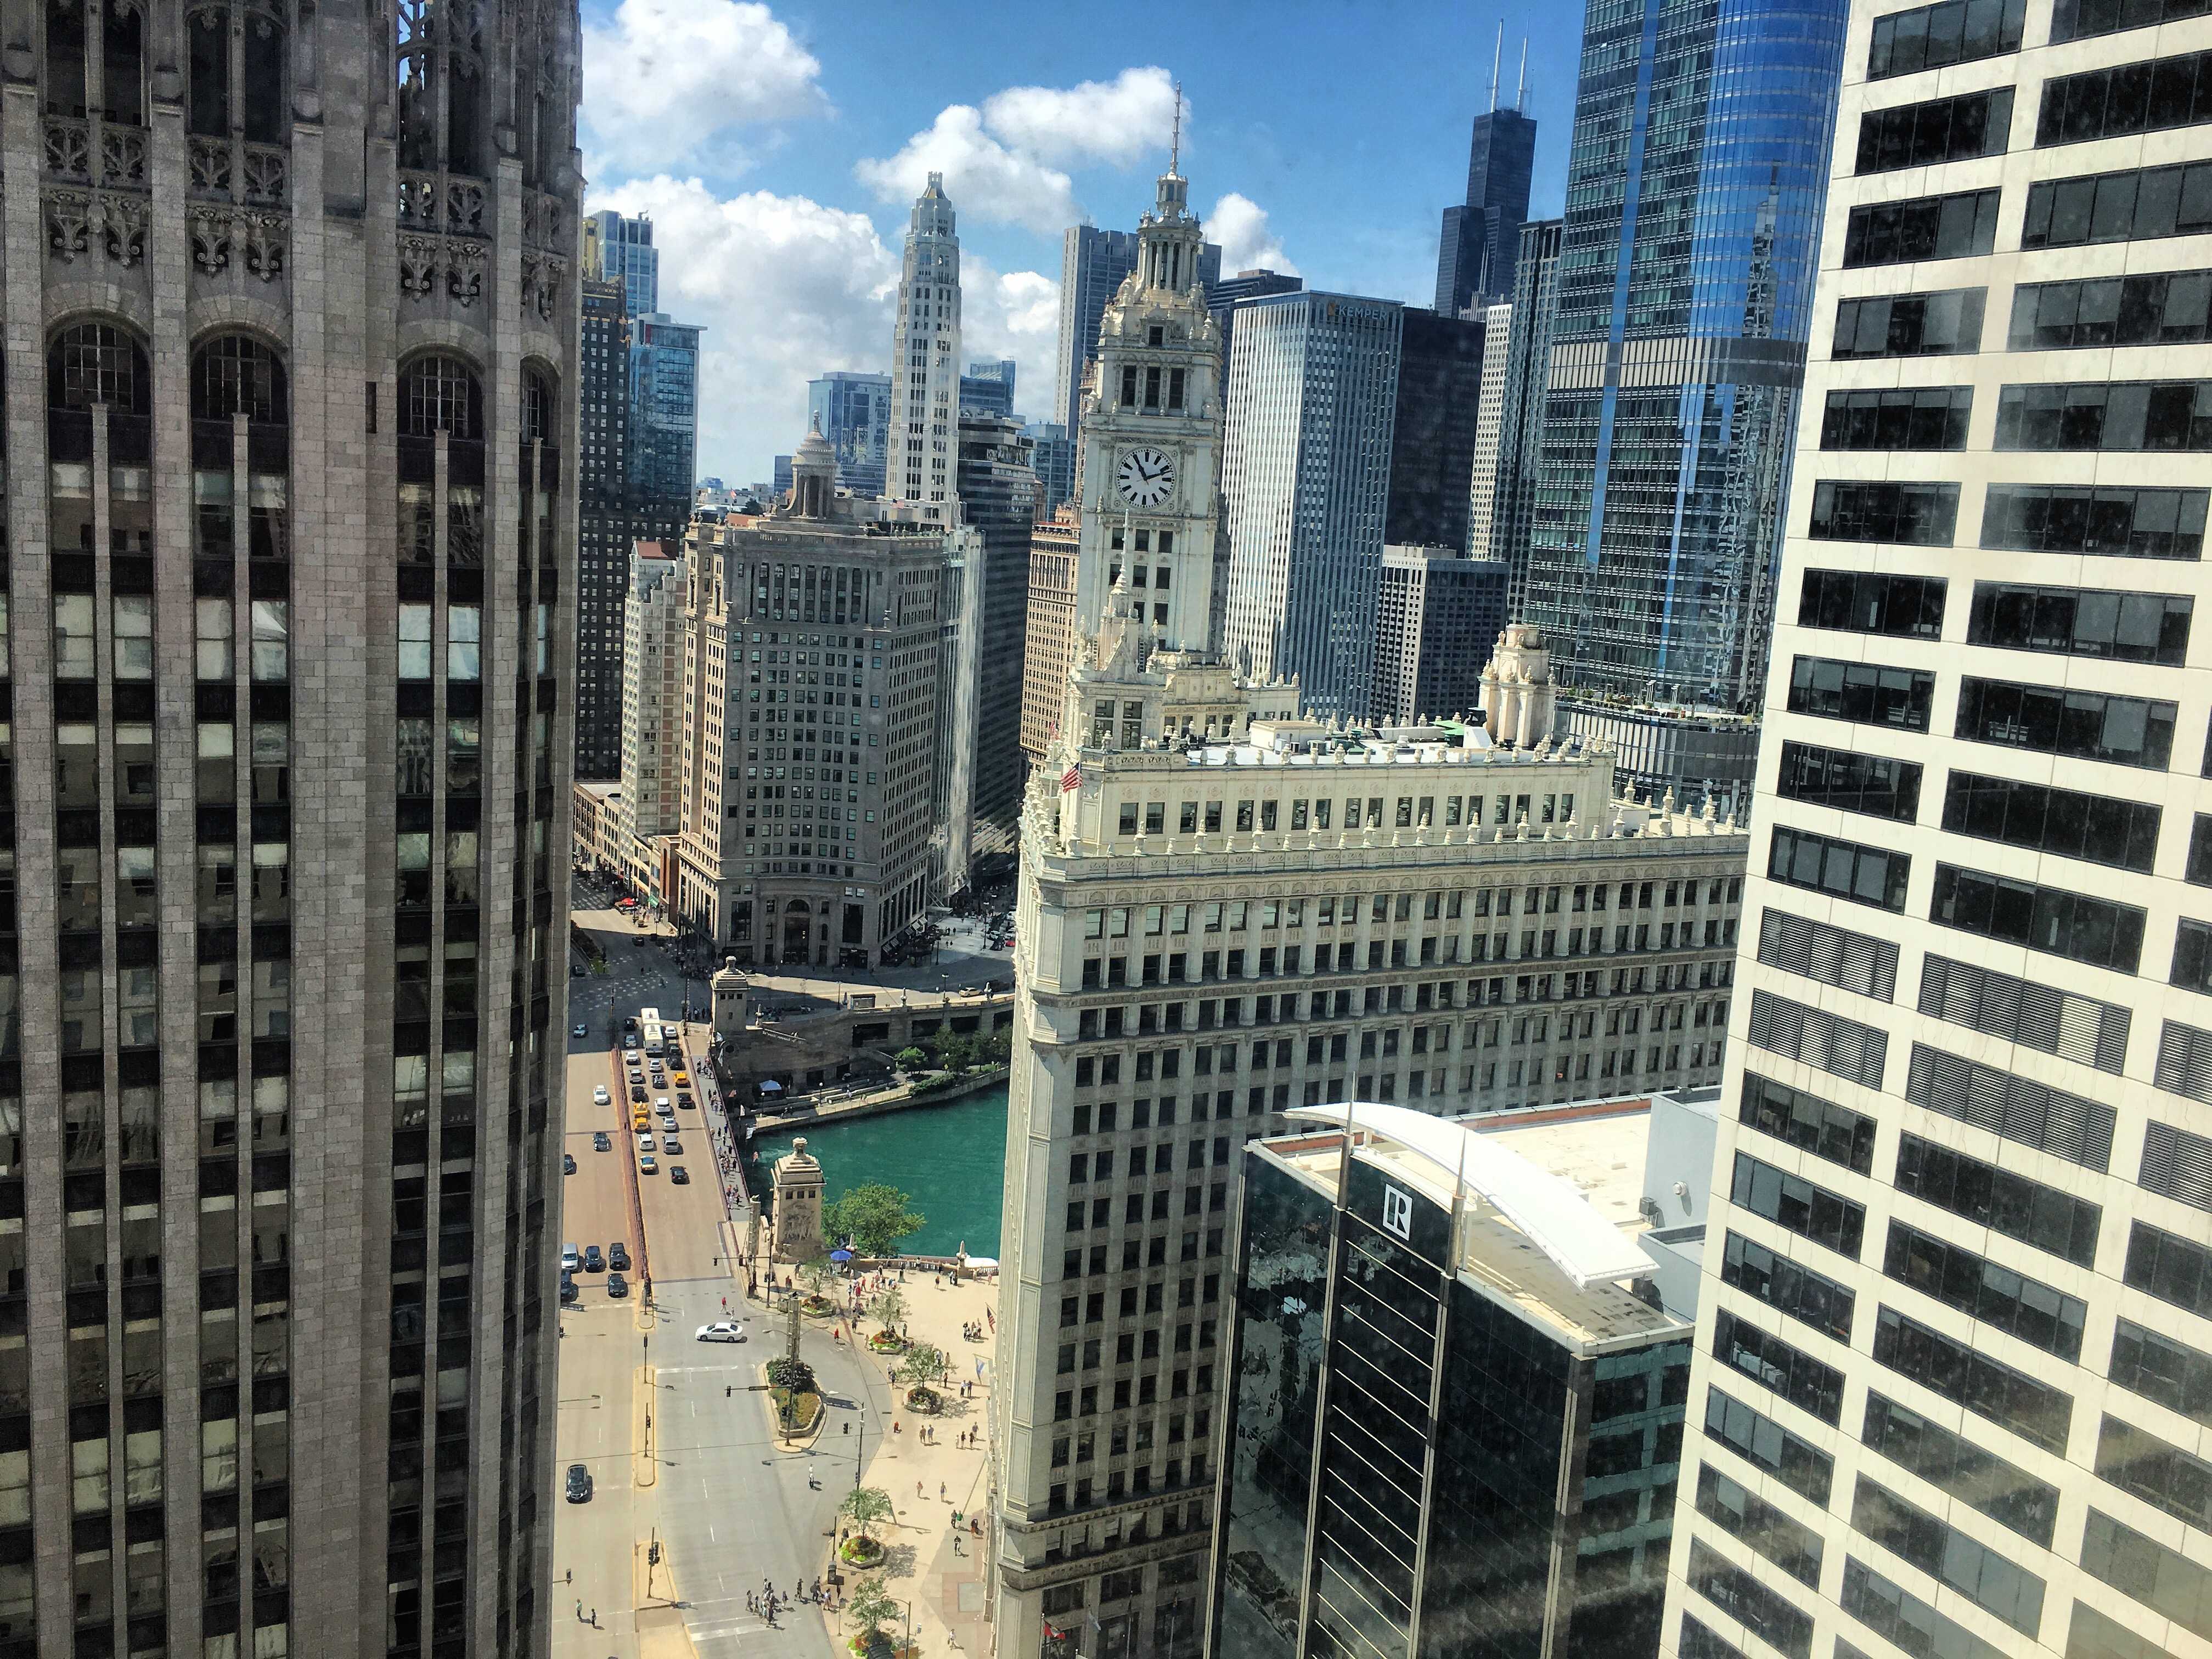 A view of the Magnificent Mile from above. Photo by Aimee Heckel